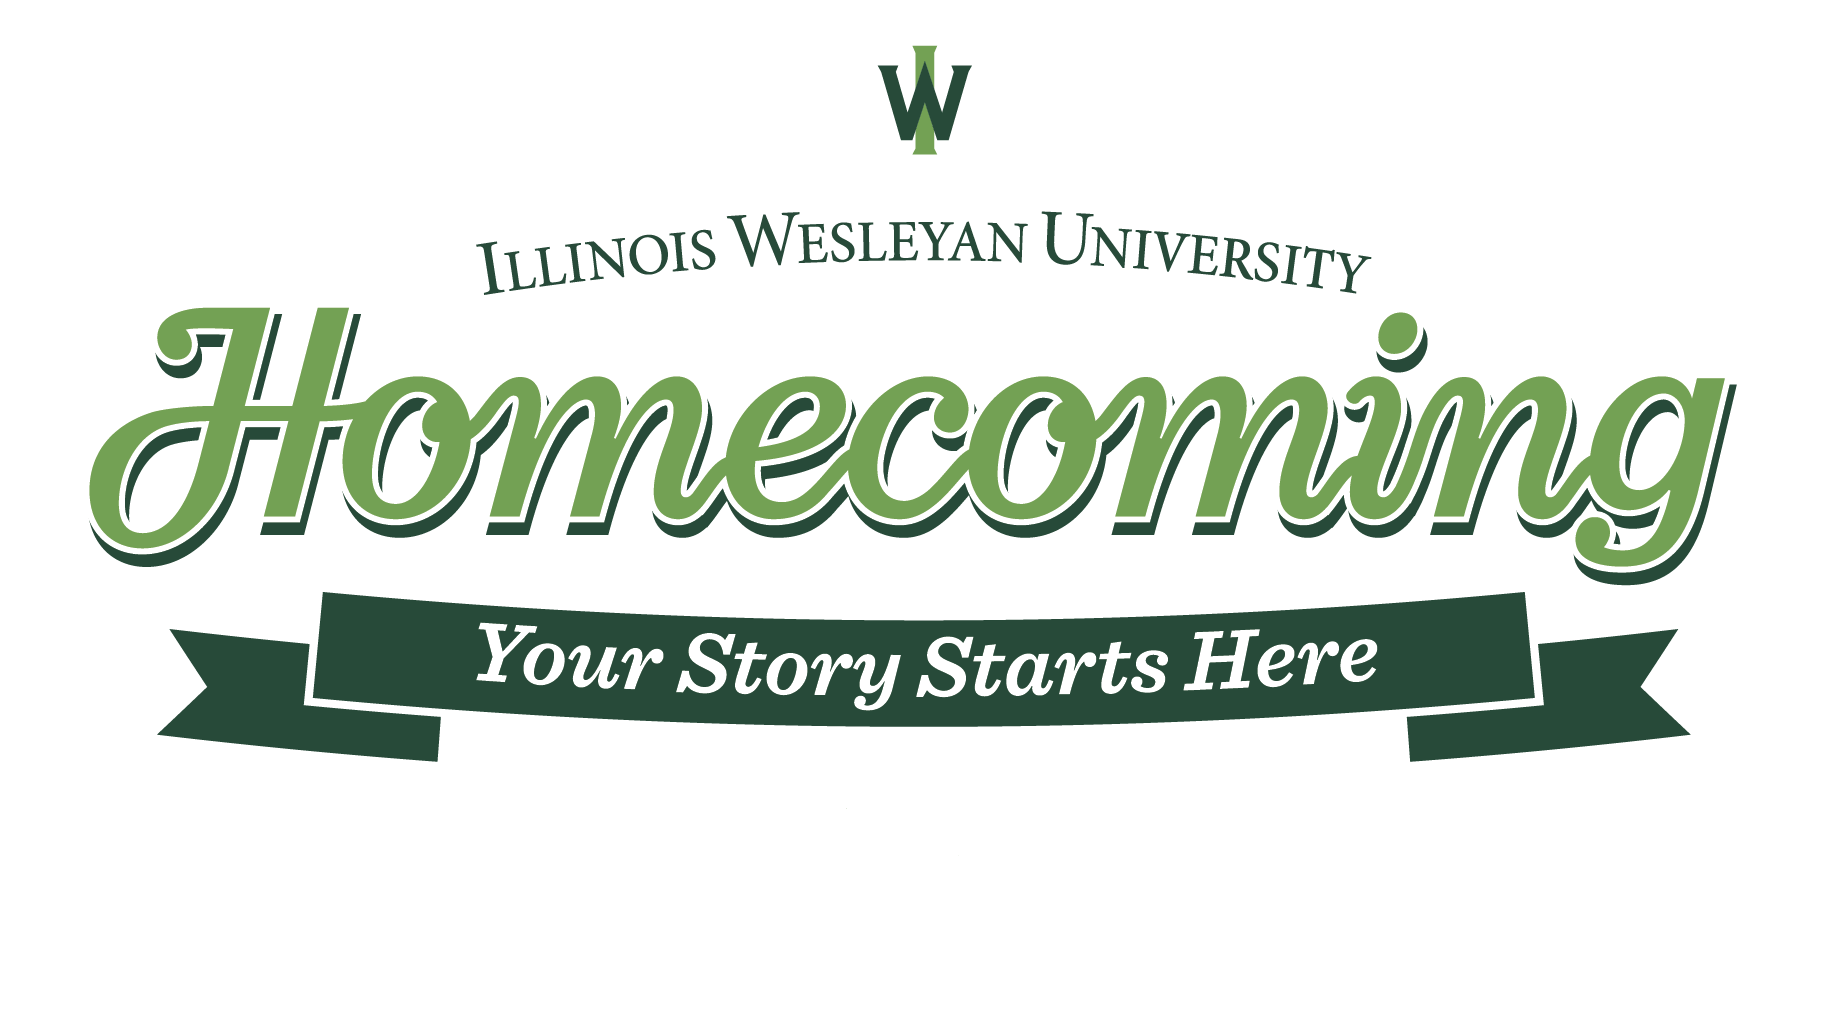 2020 homecoming logo - no date